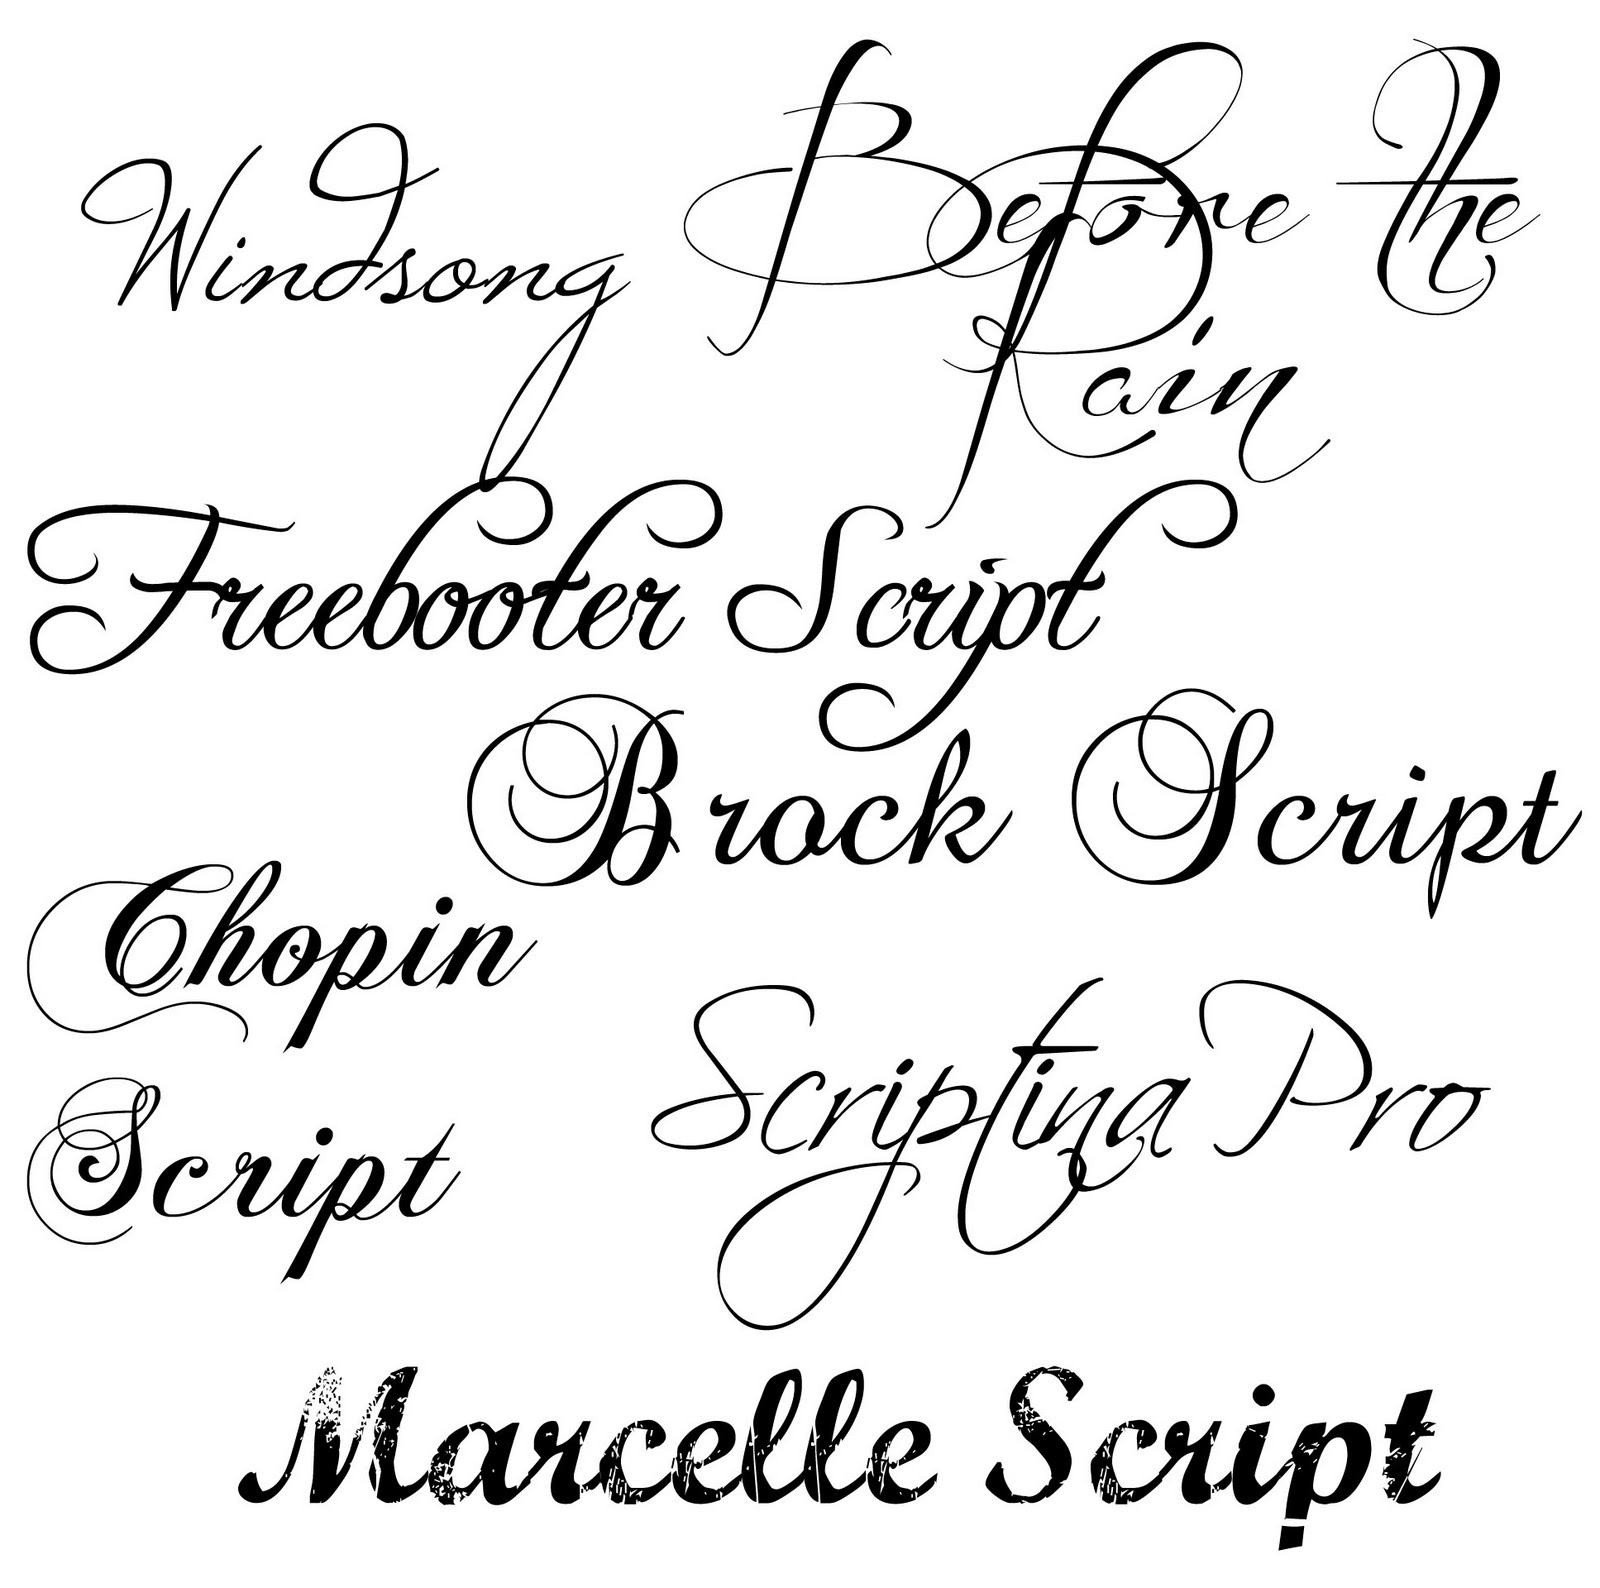 Old Calligraphy Font Free Md School Mrs Fabulous Fonts Fancy